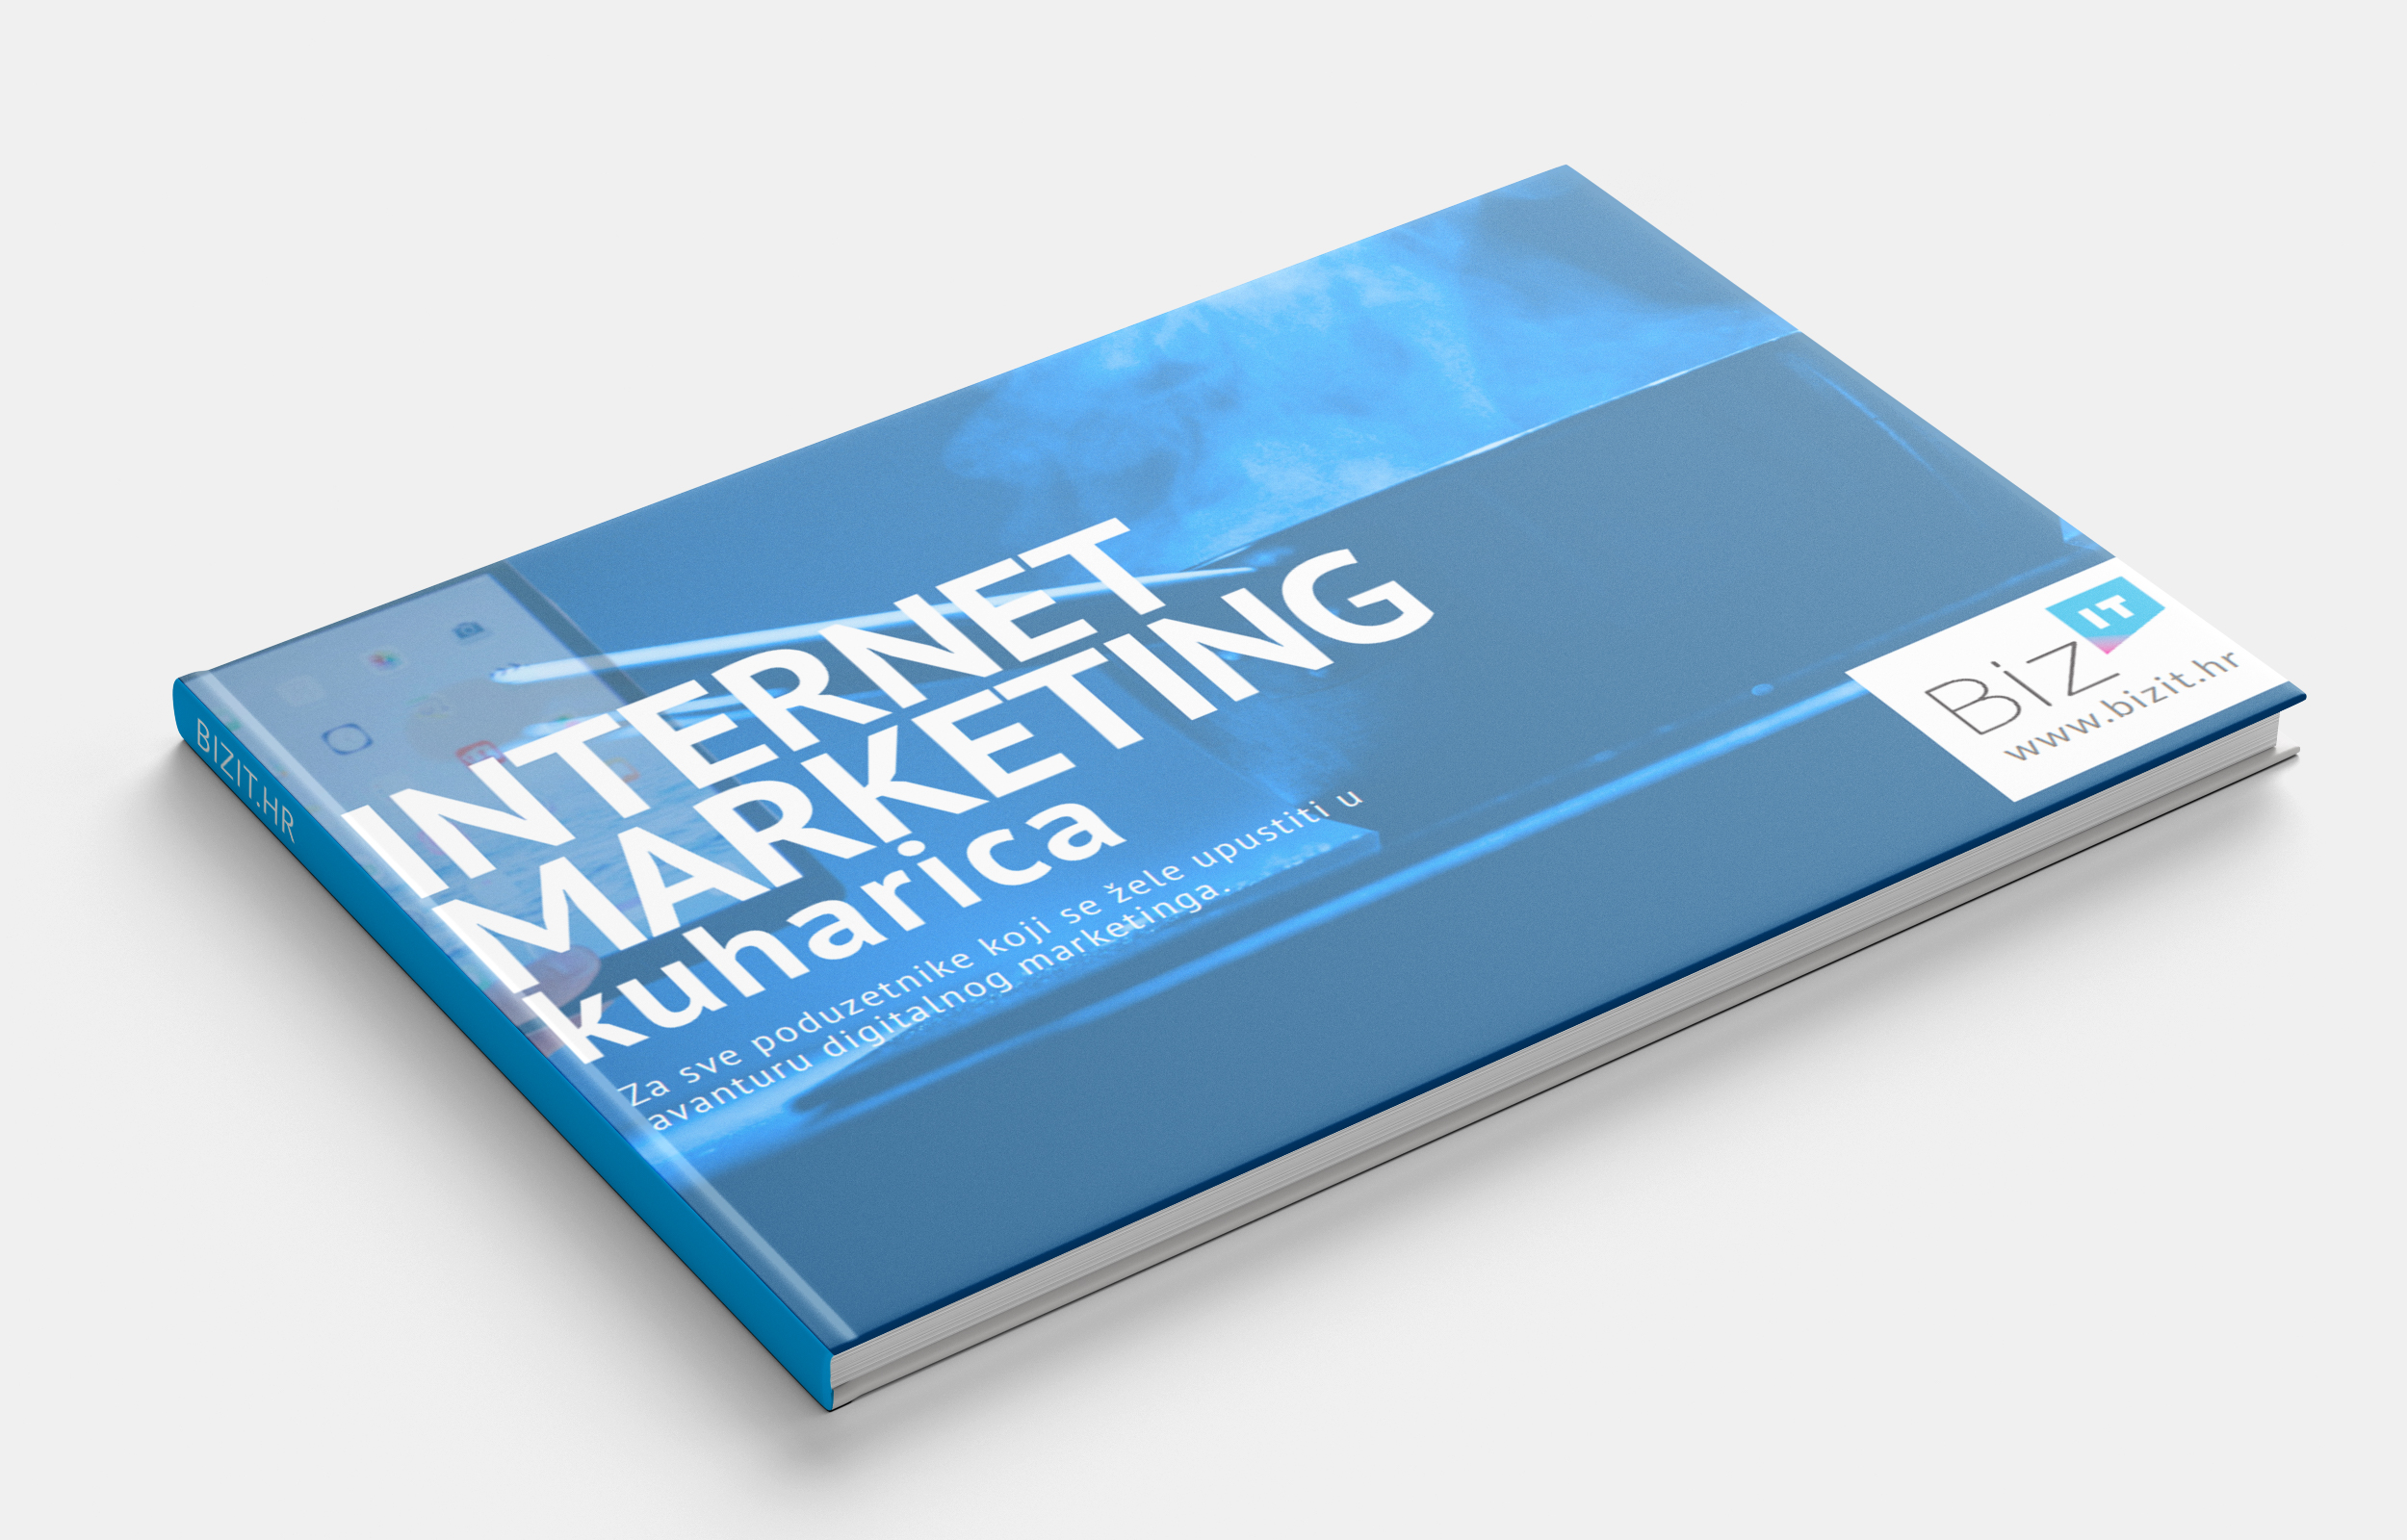 E-Book: Internet Marketing Cookbook